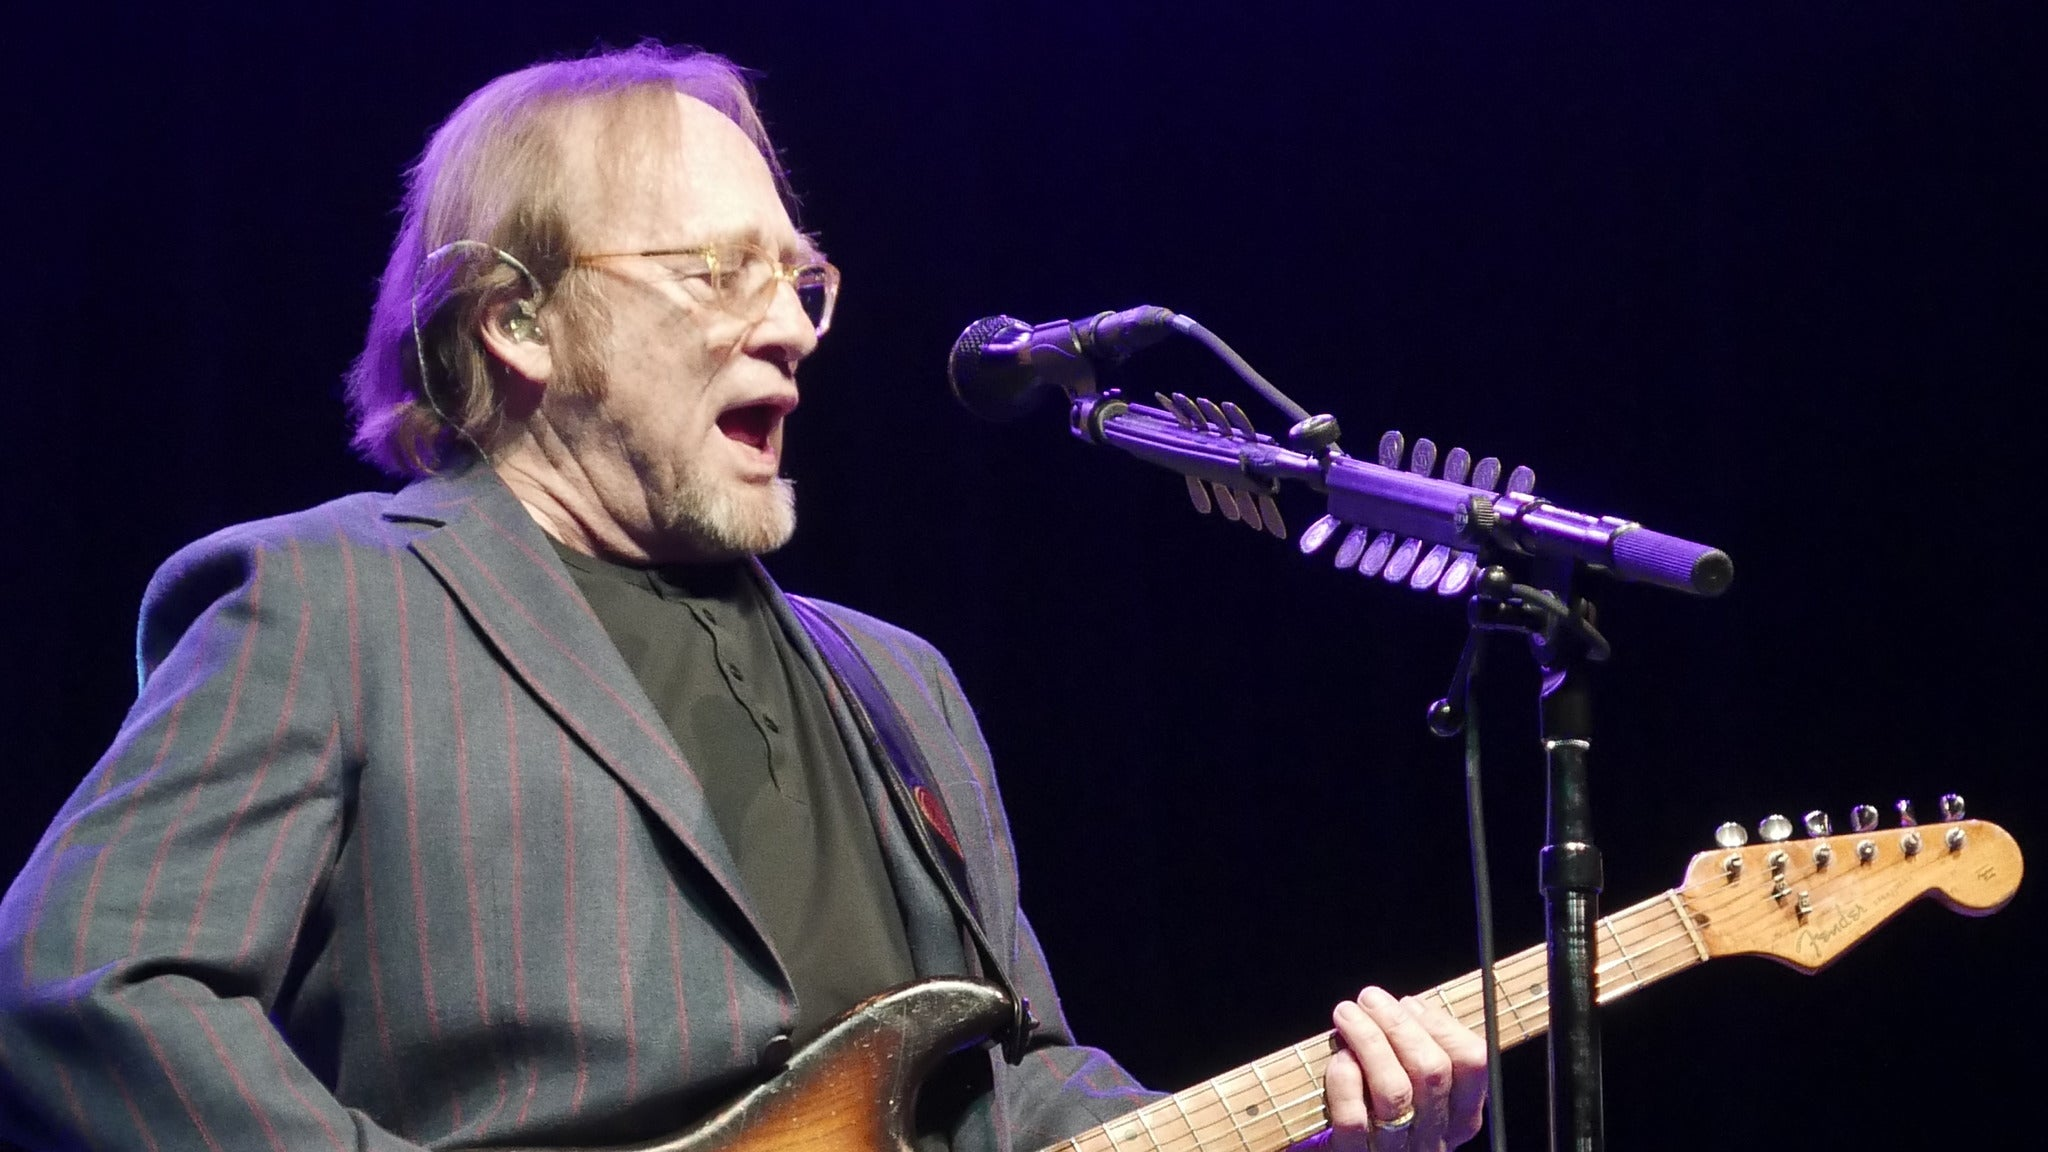 Stephen Stills w/ Judy Collins